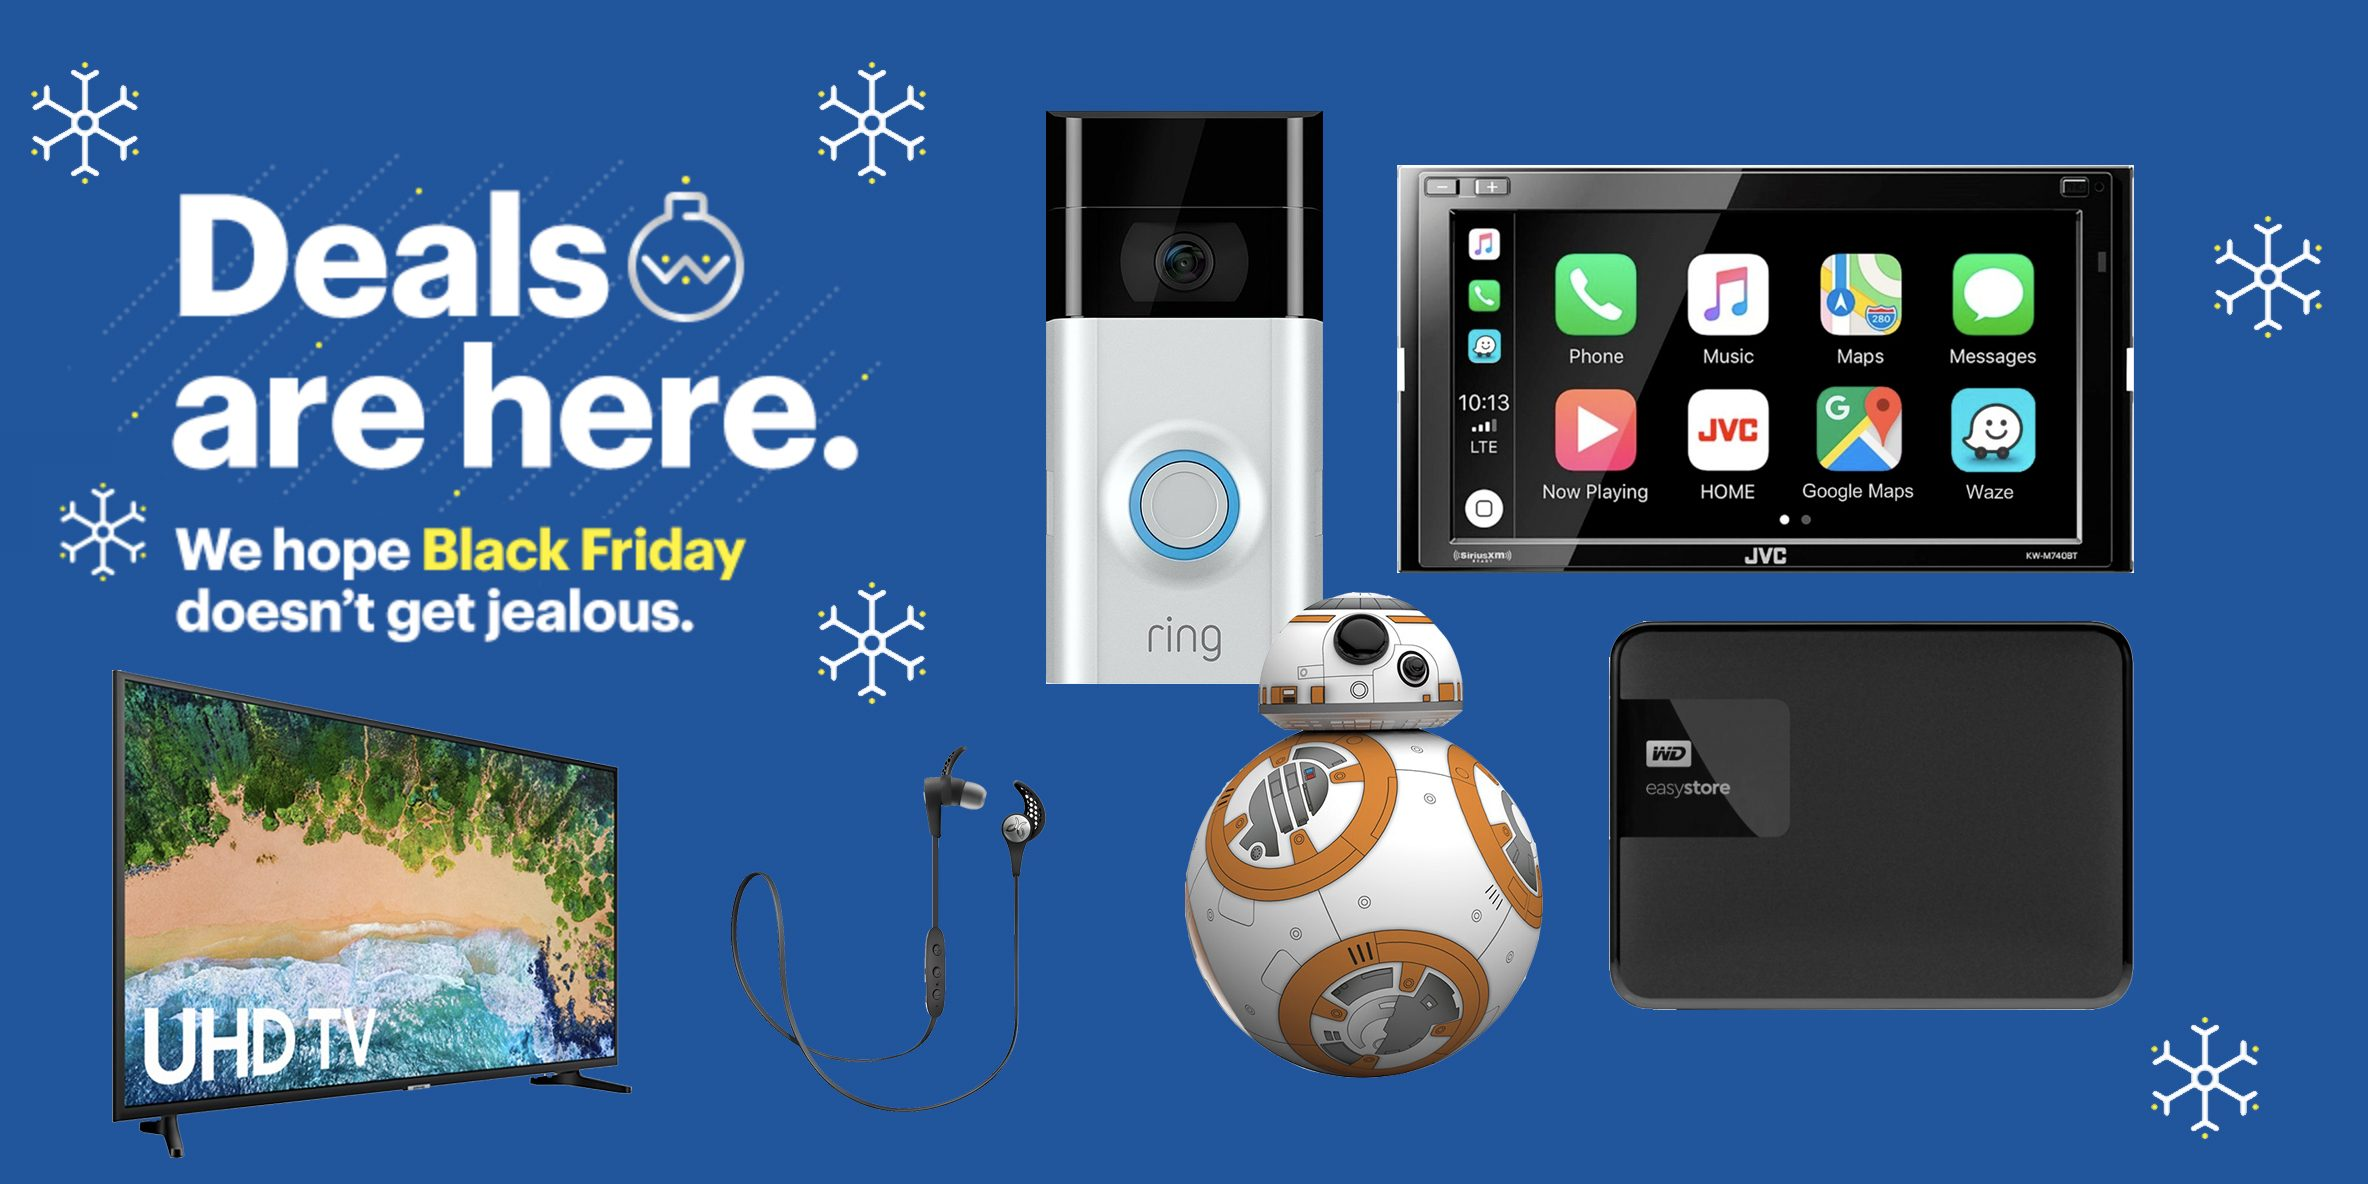 9to5Toys Last Call: iTunes Gift Card 15% off, Anker